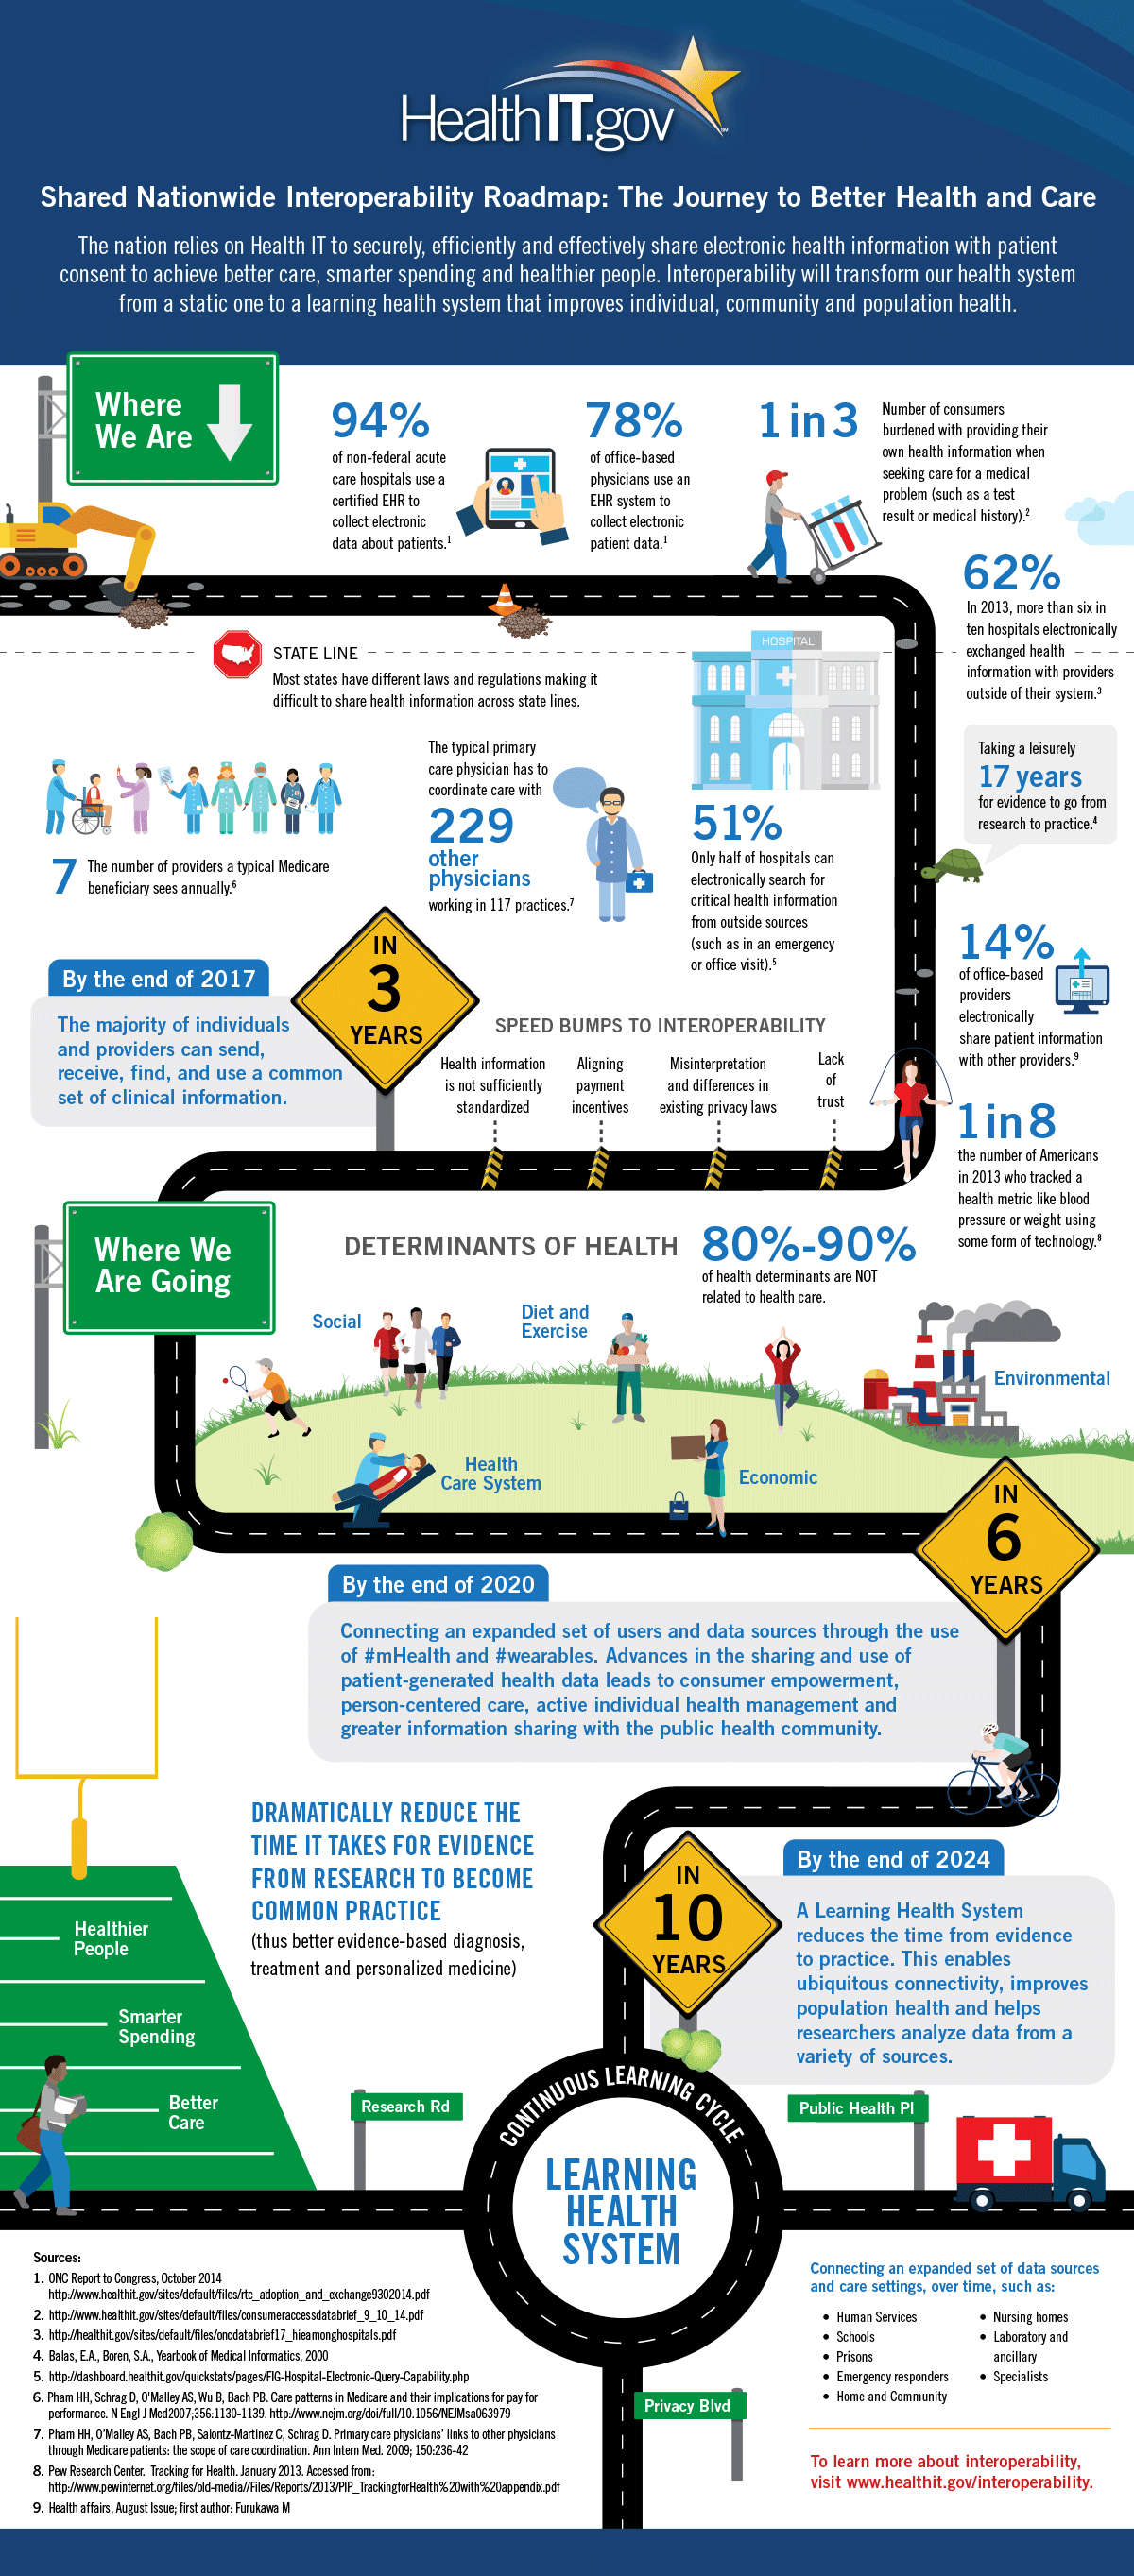 'Shared Nationwide Interoperability Roadmap: The Journey to Better Health and Care' infographic